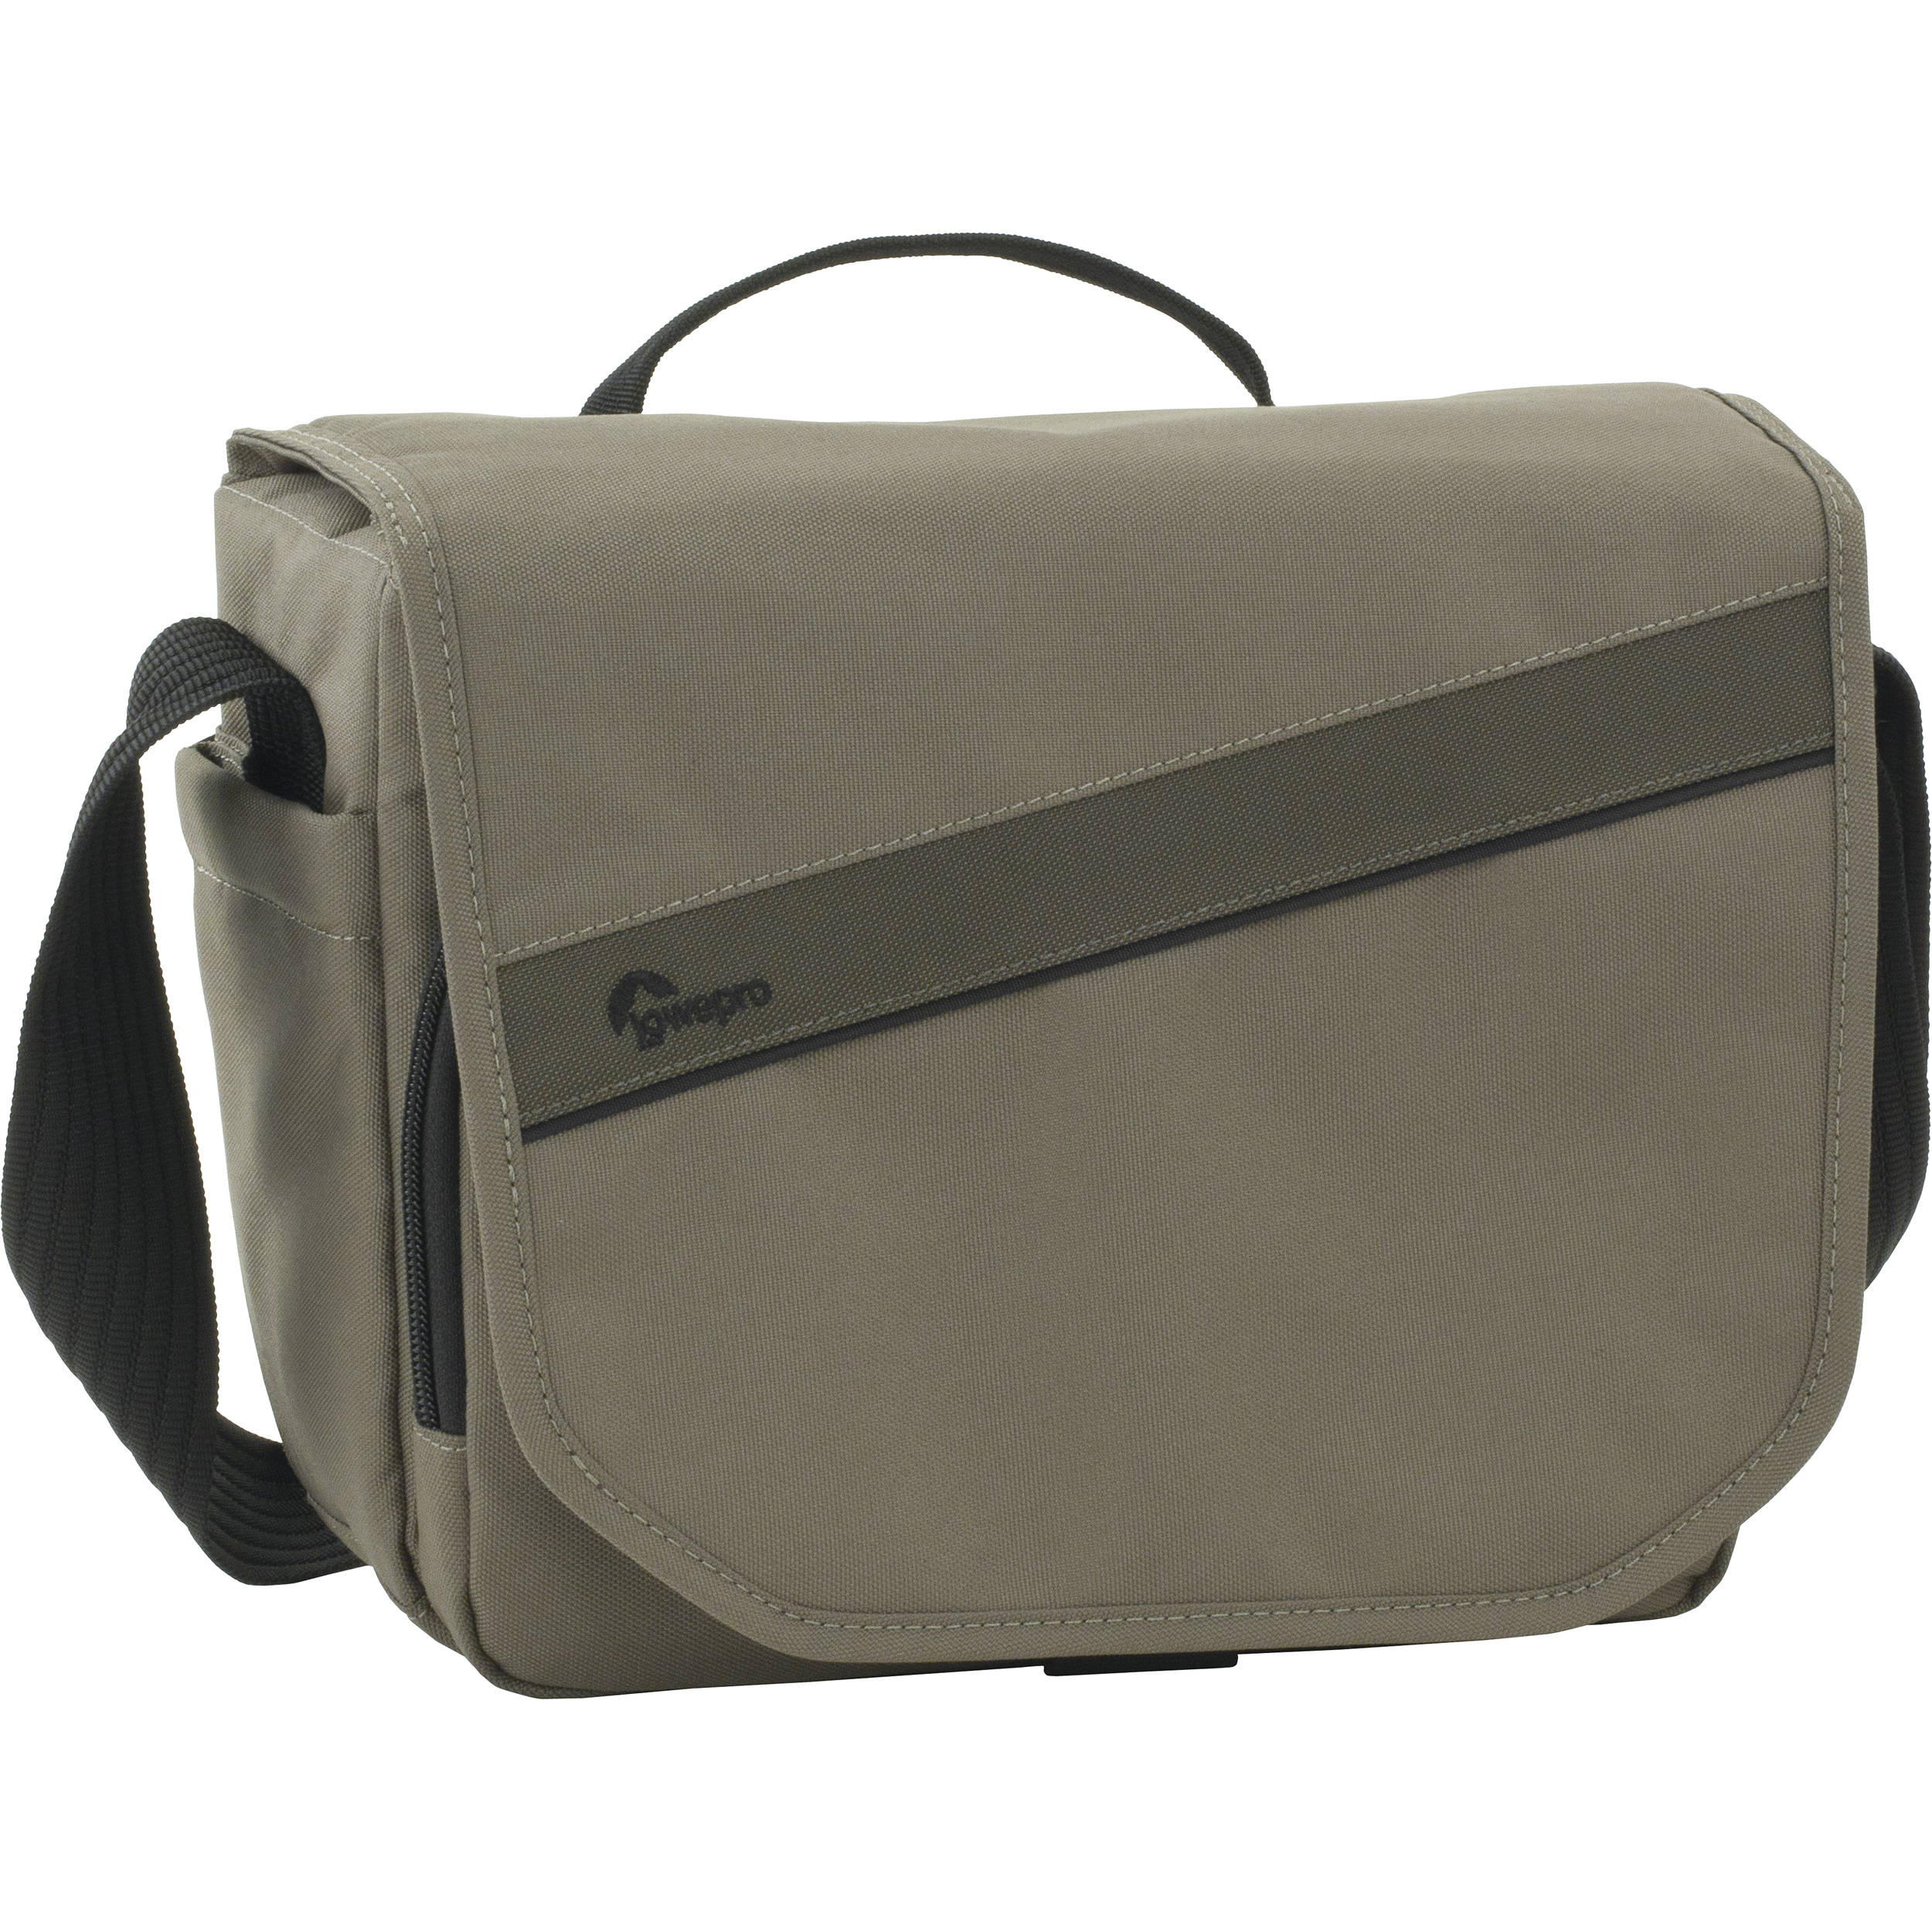 Lowepro Event Messenger 150 Shoulder Bag (Mica)